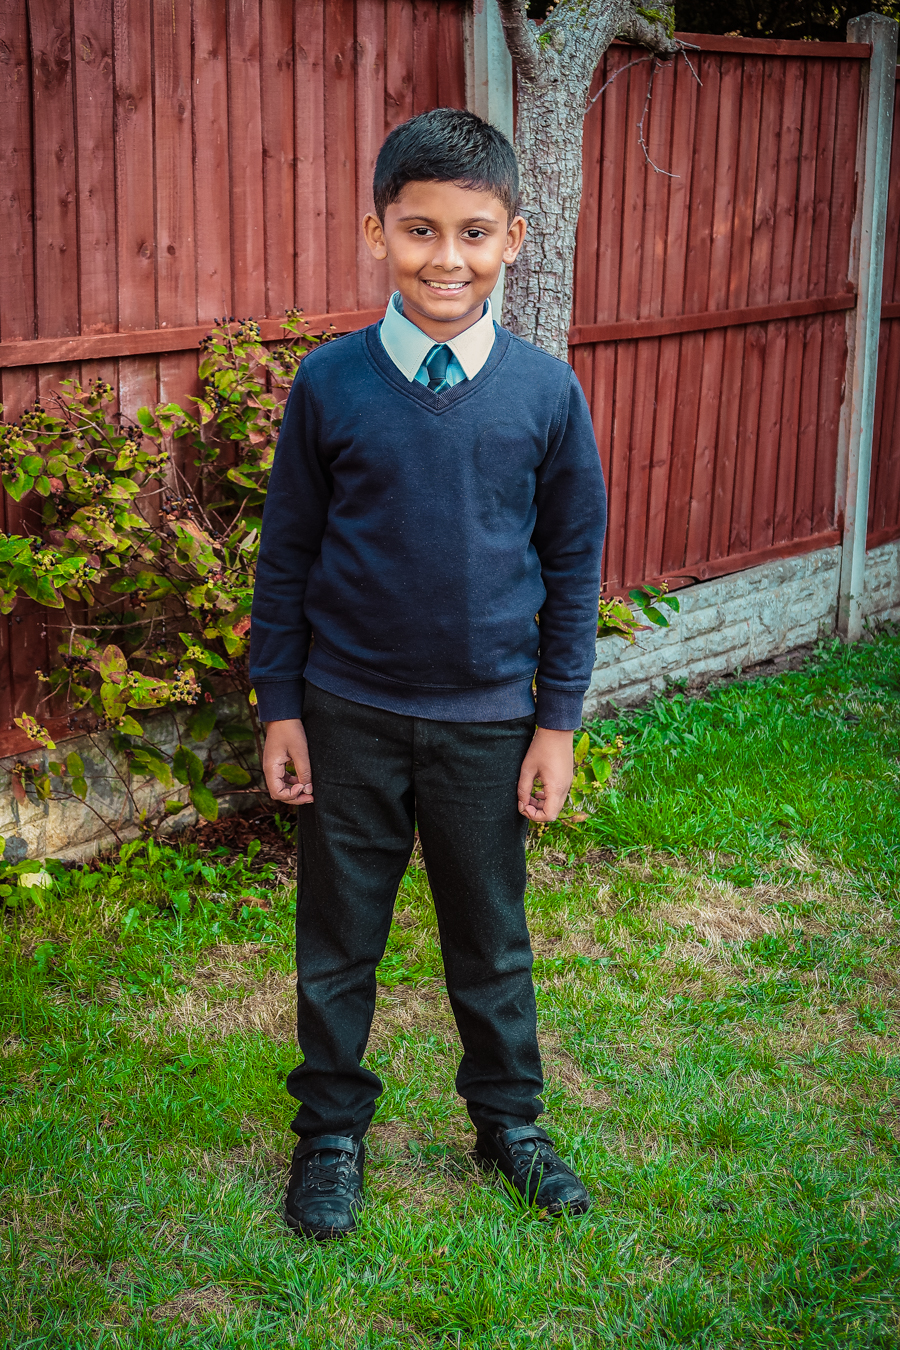 Back To School - Shivam In His Uniform